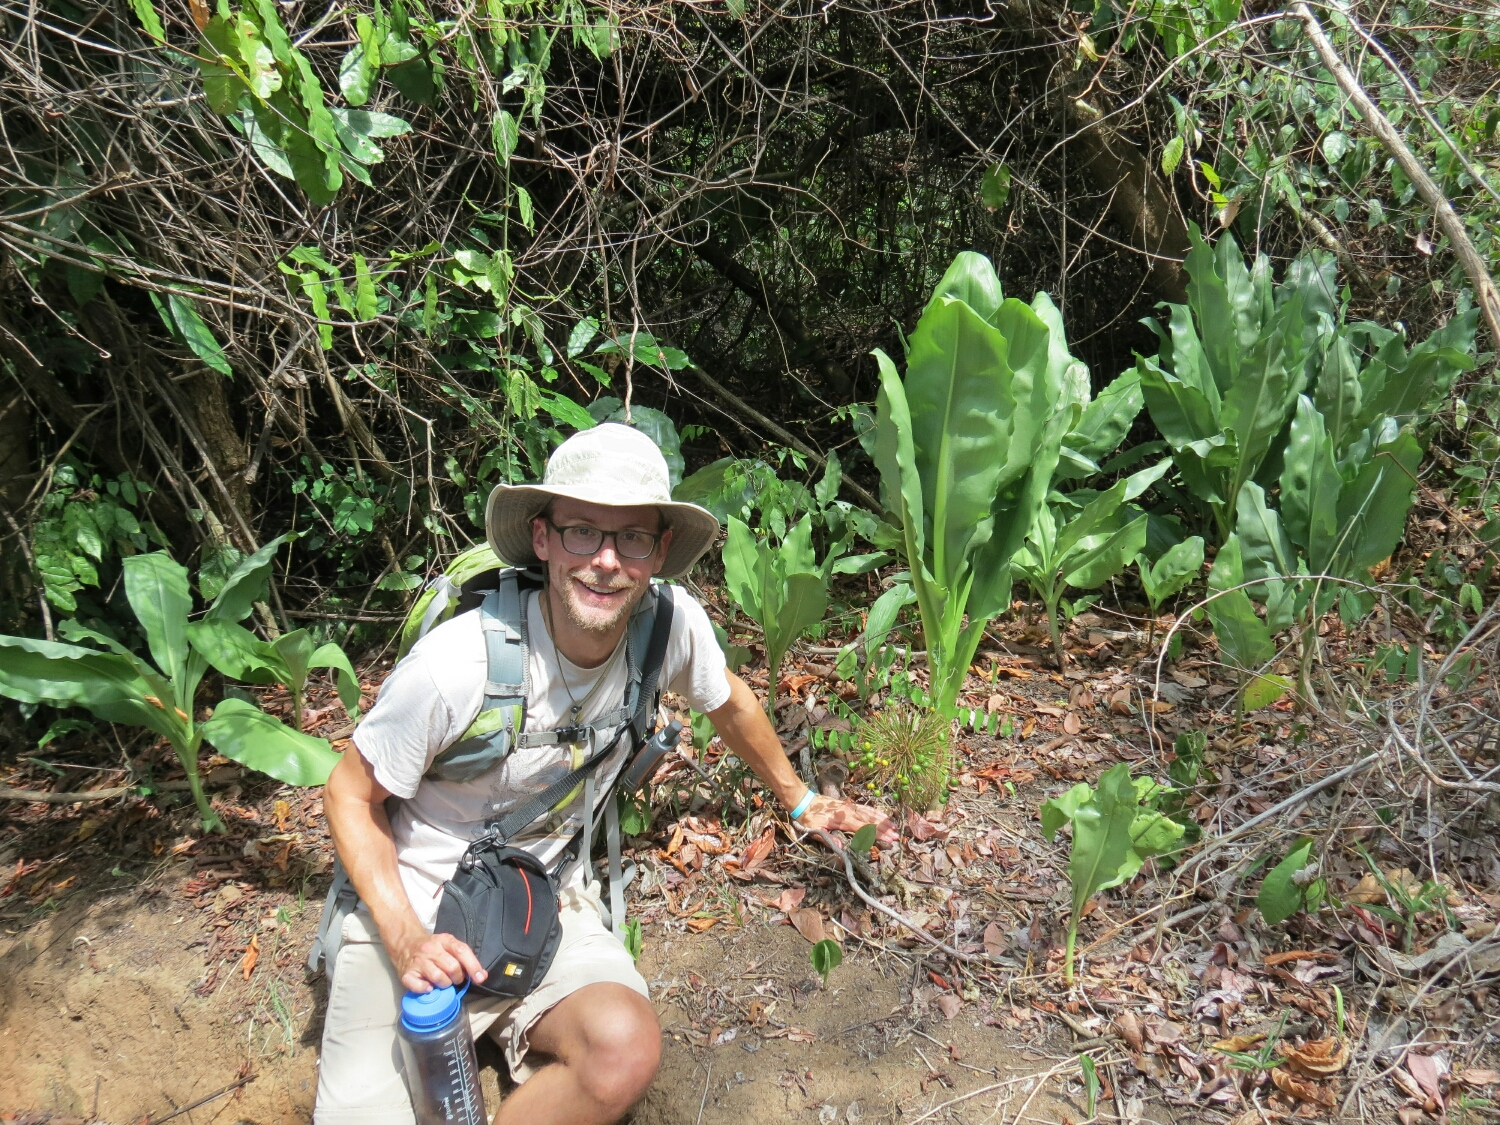 Enjoying some huge Scadoxus near the start of the Sanje Falls hike at the Udzungwa Mountains National Park.